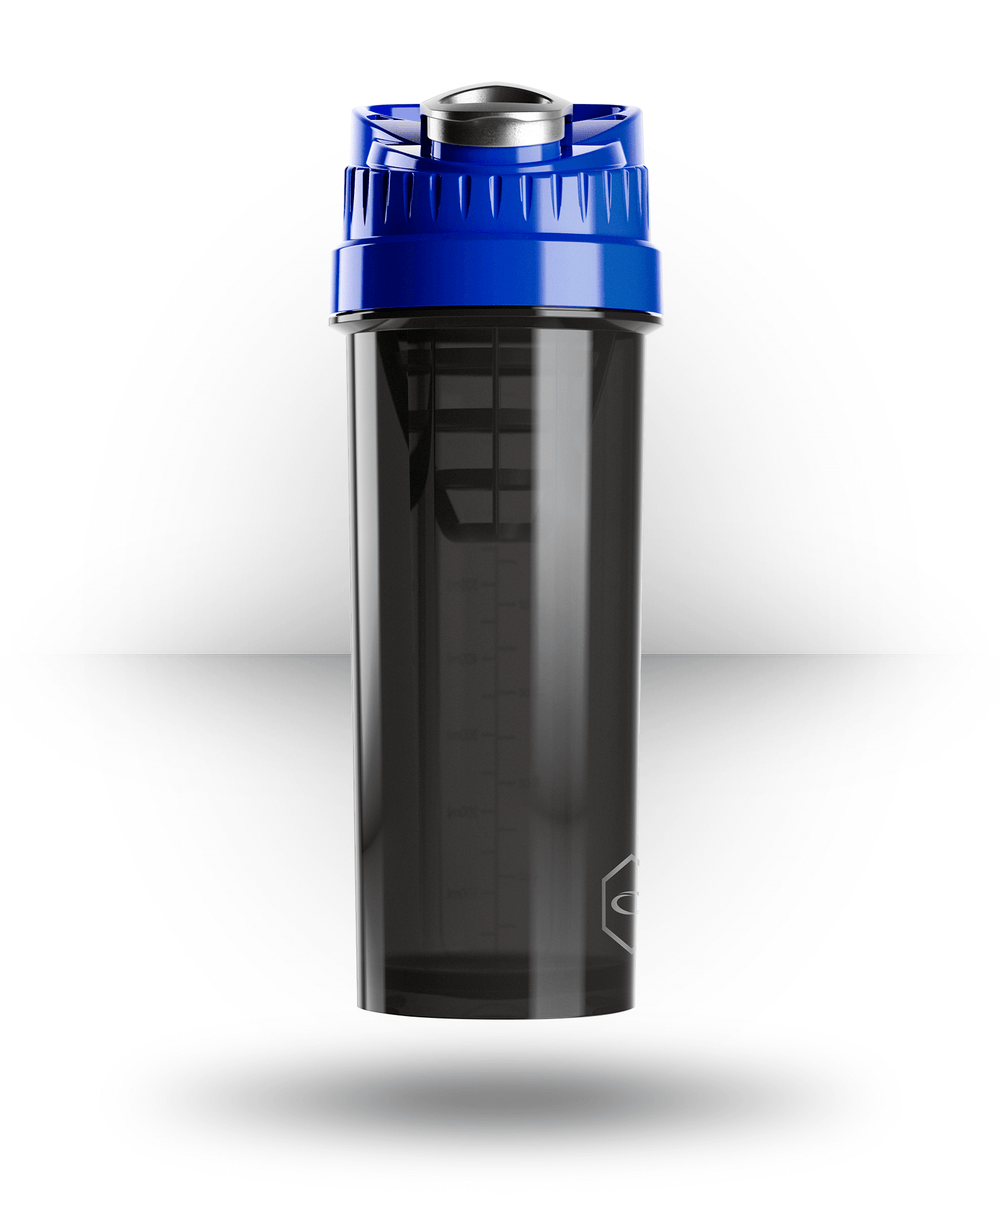 Cyclone Cup Cyclone32 Blue 32 oz